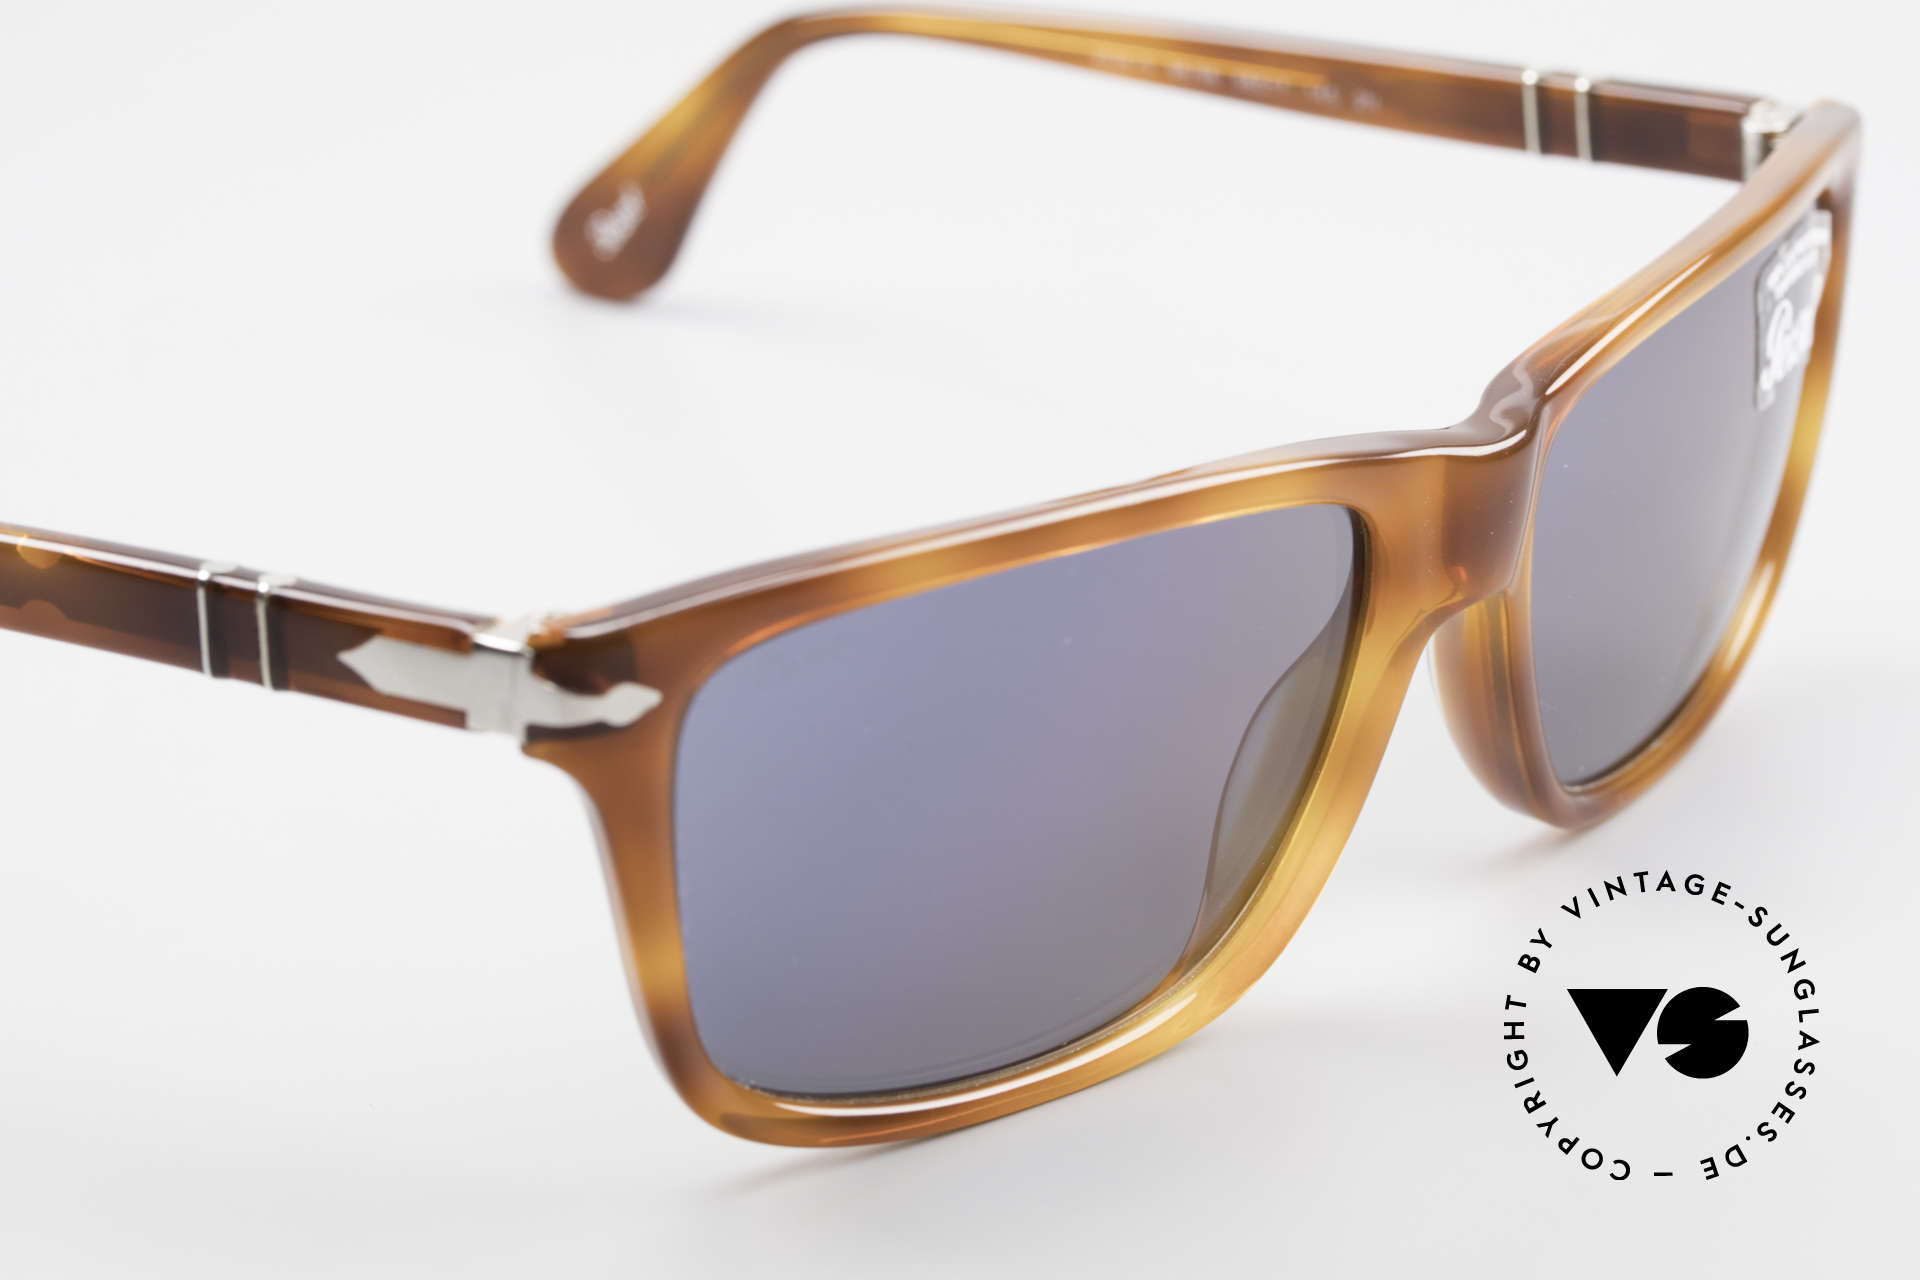 Persol 3026 Classic Sunglasses For Men, reissue of the old vintage Persol RATTI models, Made for Men